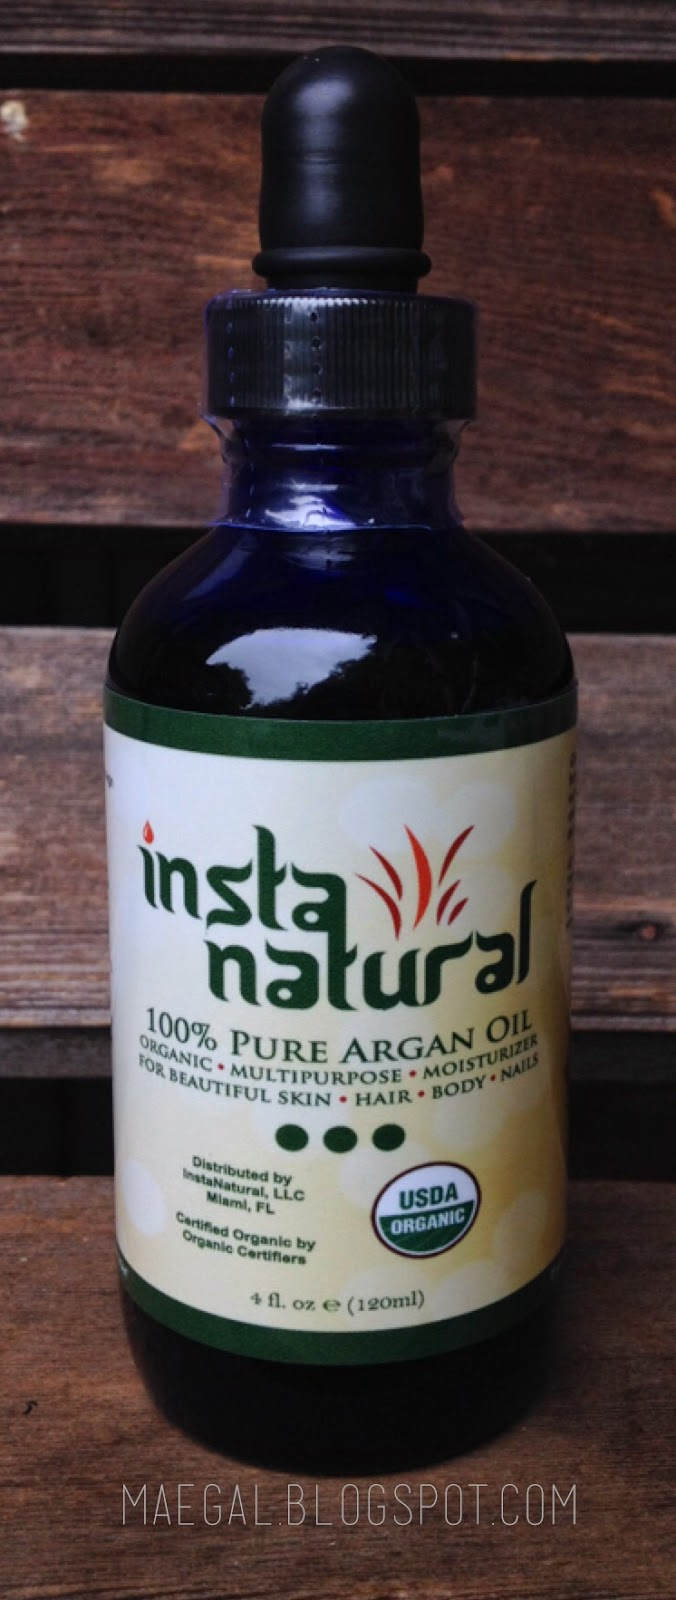 instanaturals 100% pure argan oil | maegal.blogspot.com